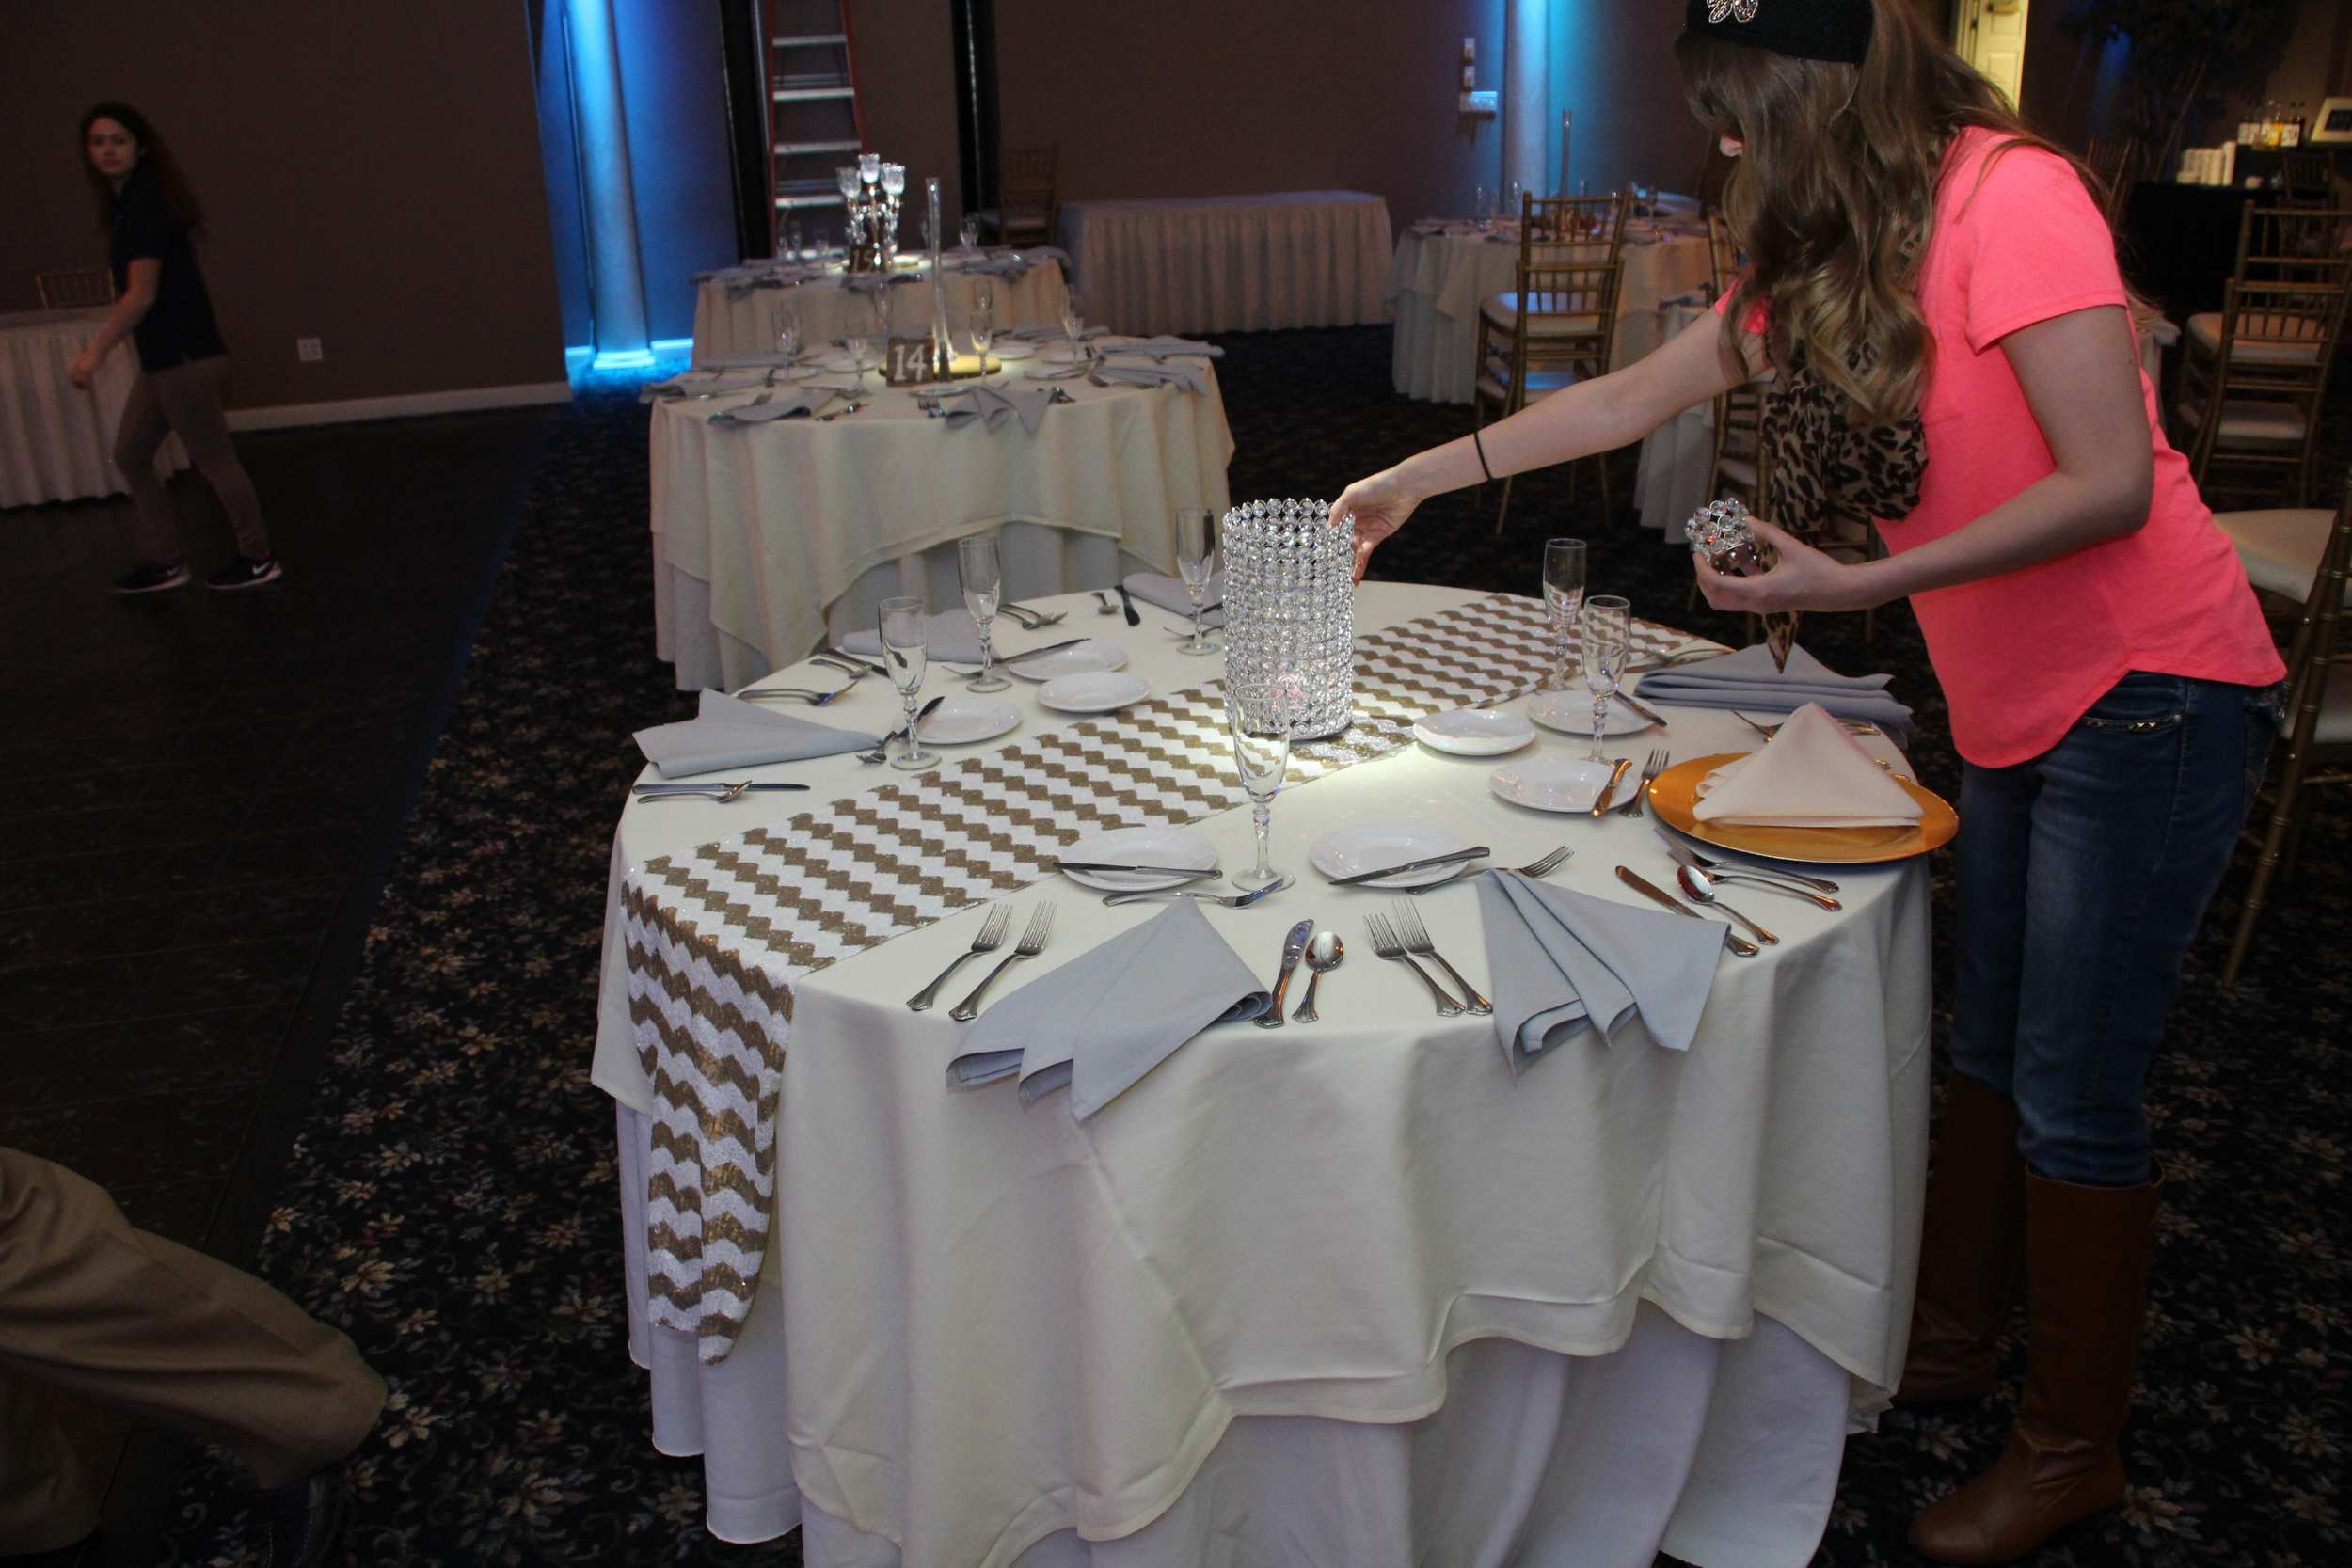 Getting the 'true feel' in the ballroom with table settings and pin spotting!